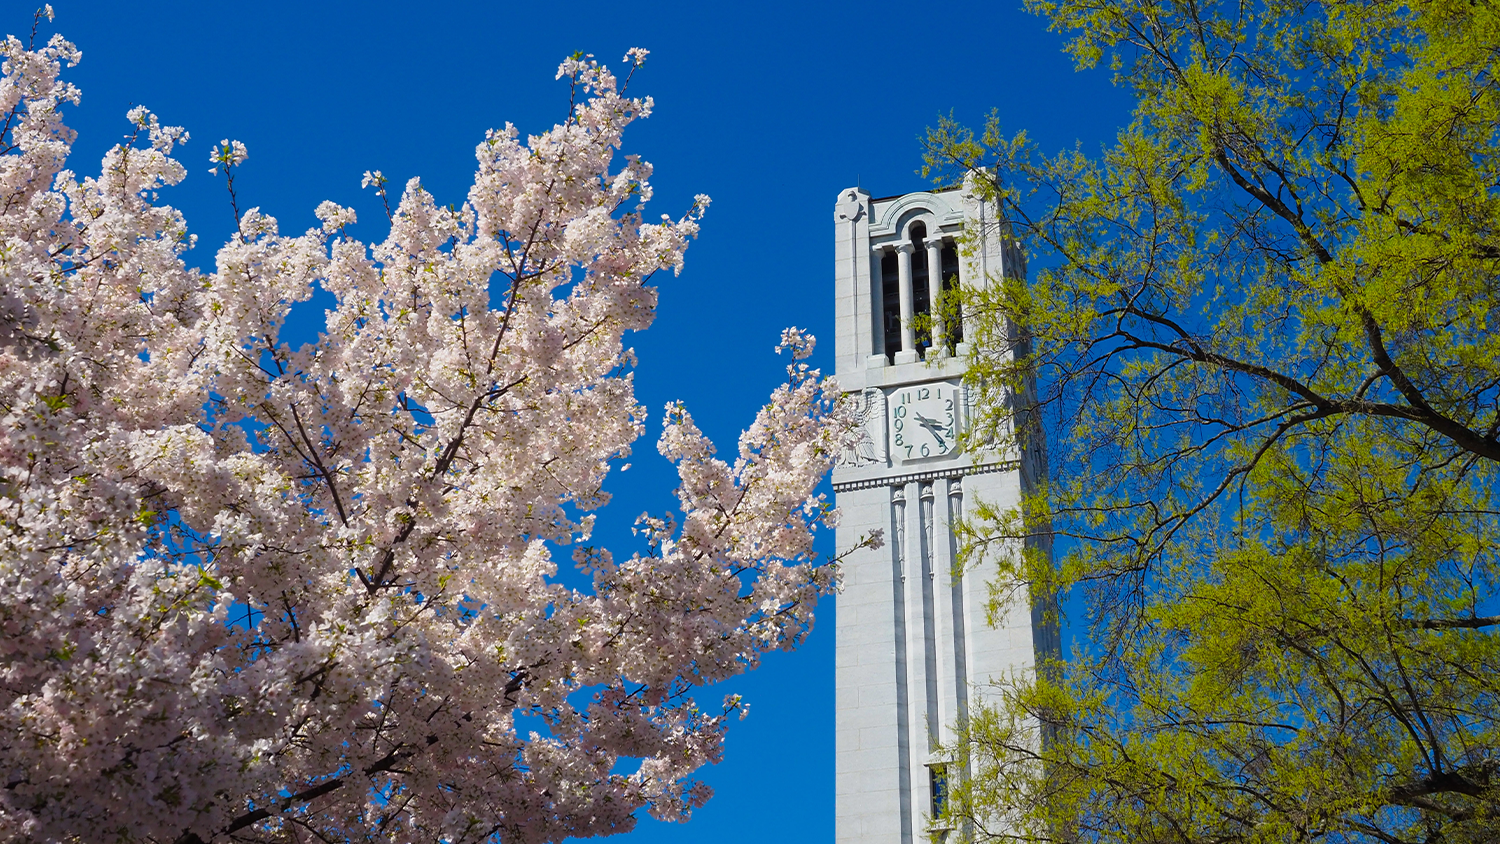 Pink spring flowers can be seen next to the belltower on a nice sunny spring day.